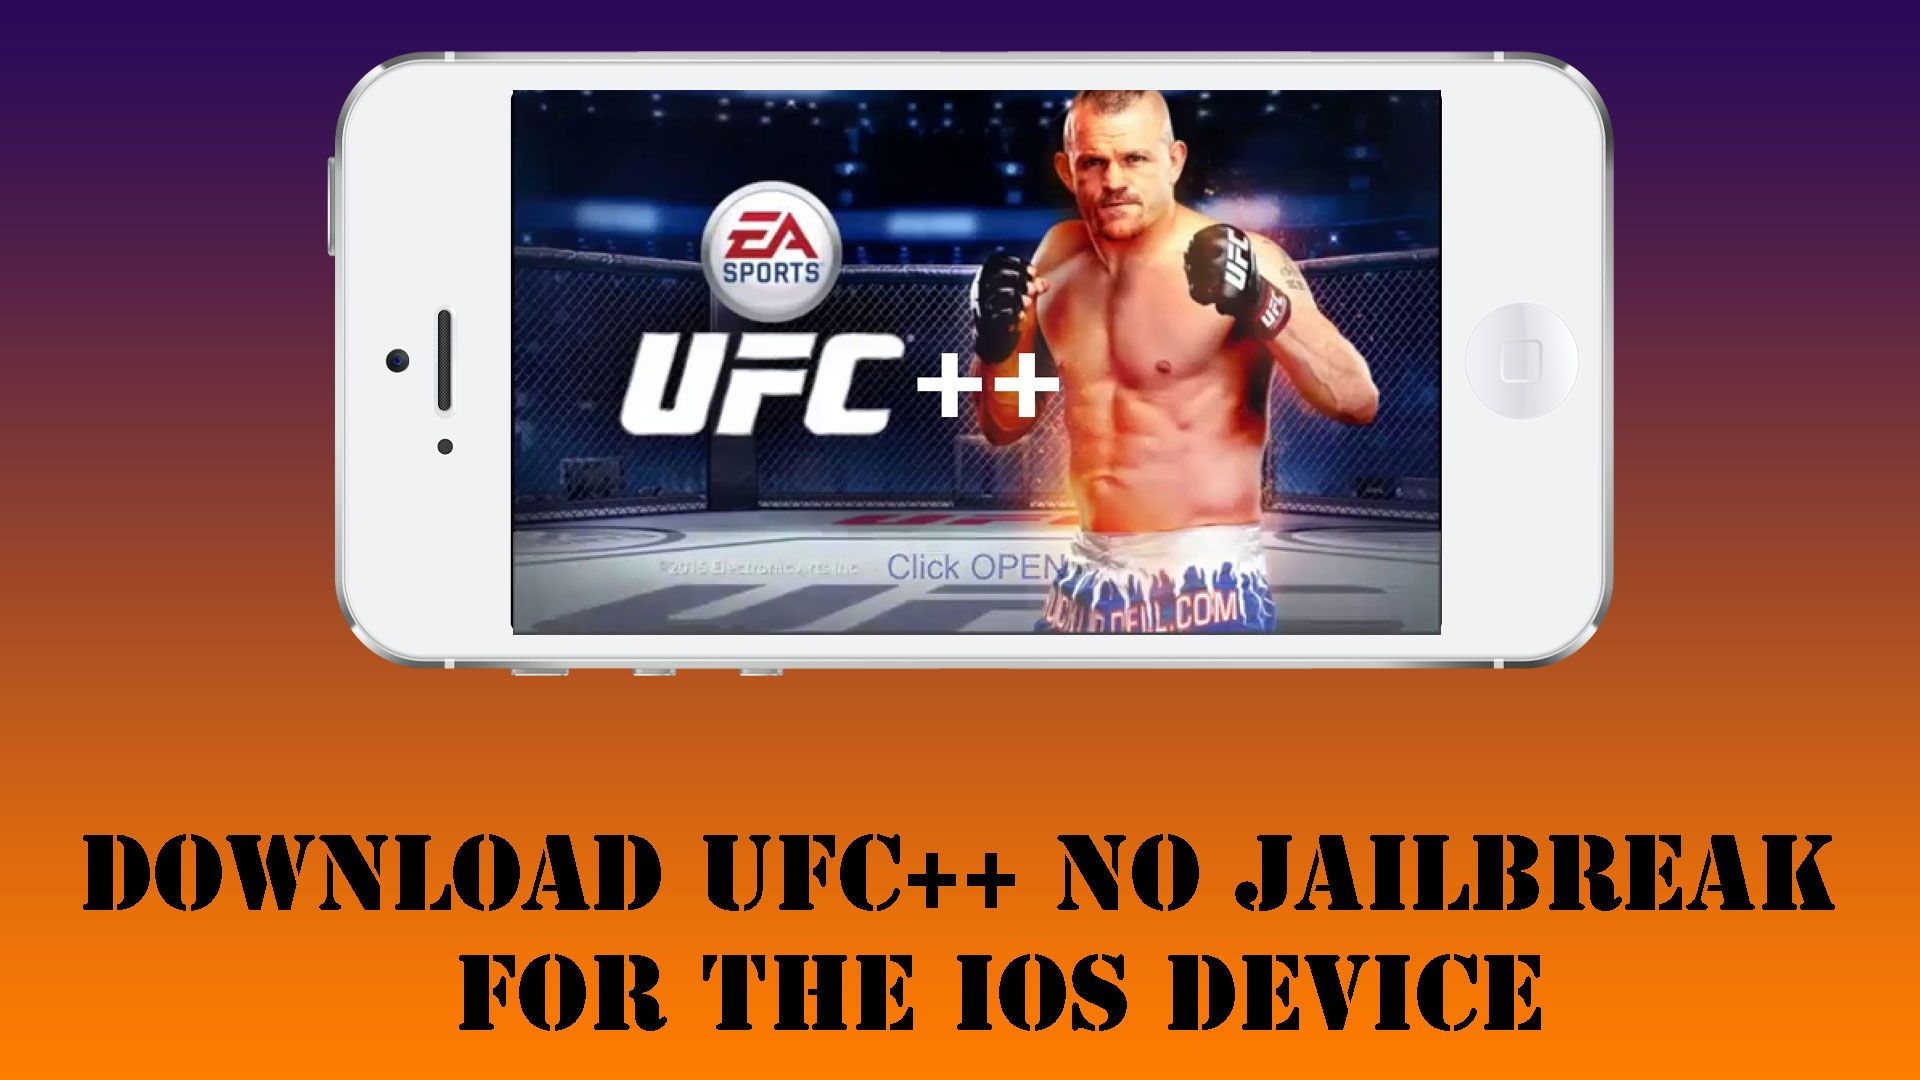 Download ufc on the iphone ipad or ipod touch without